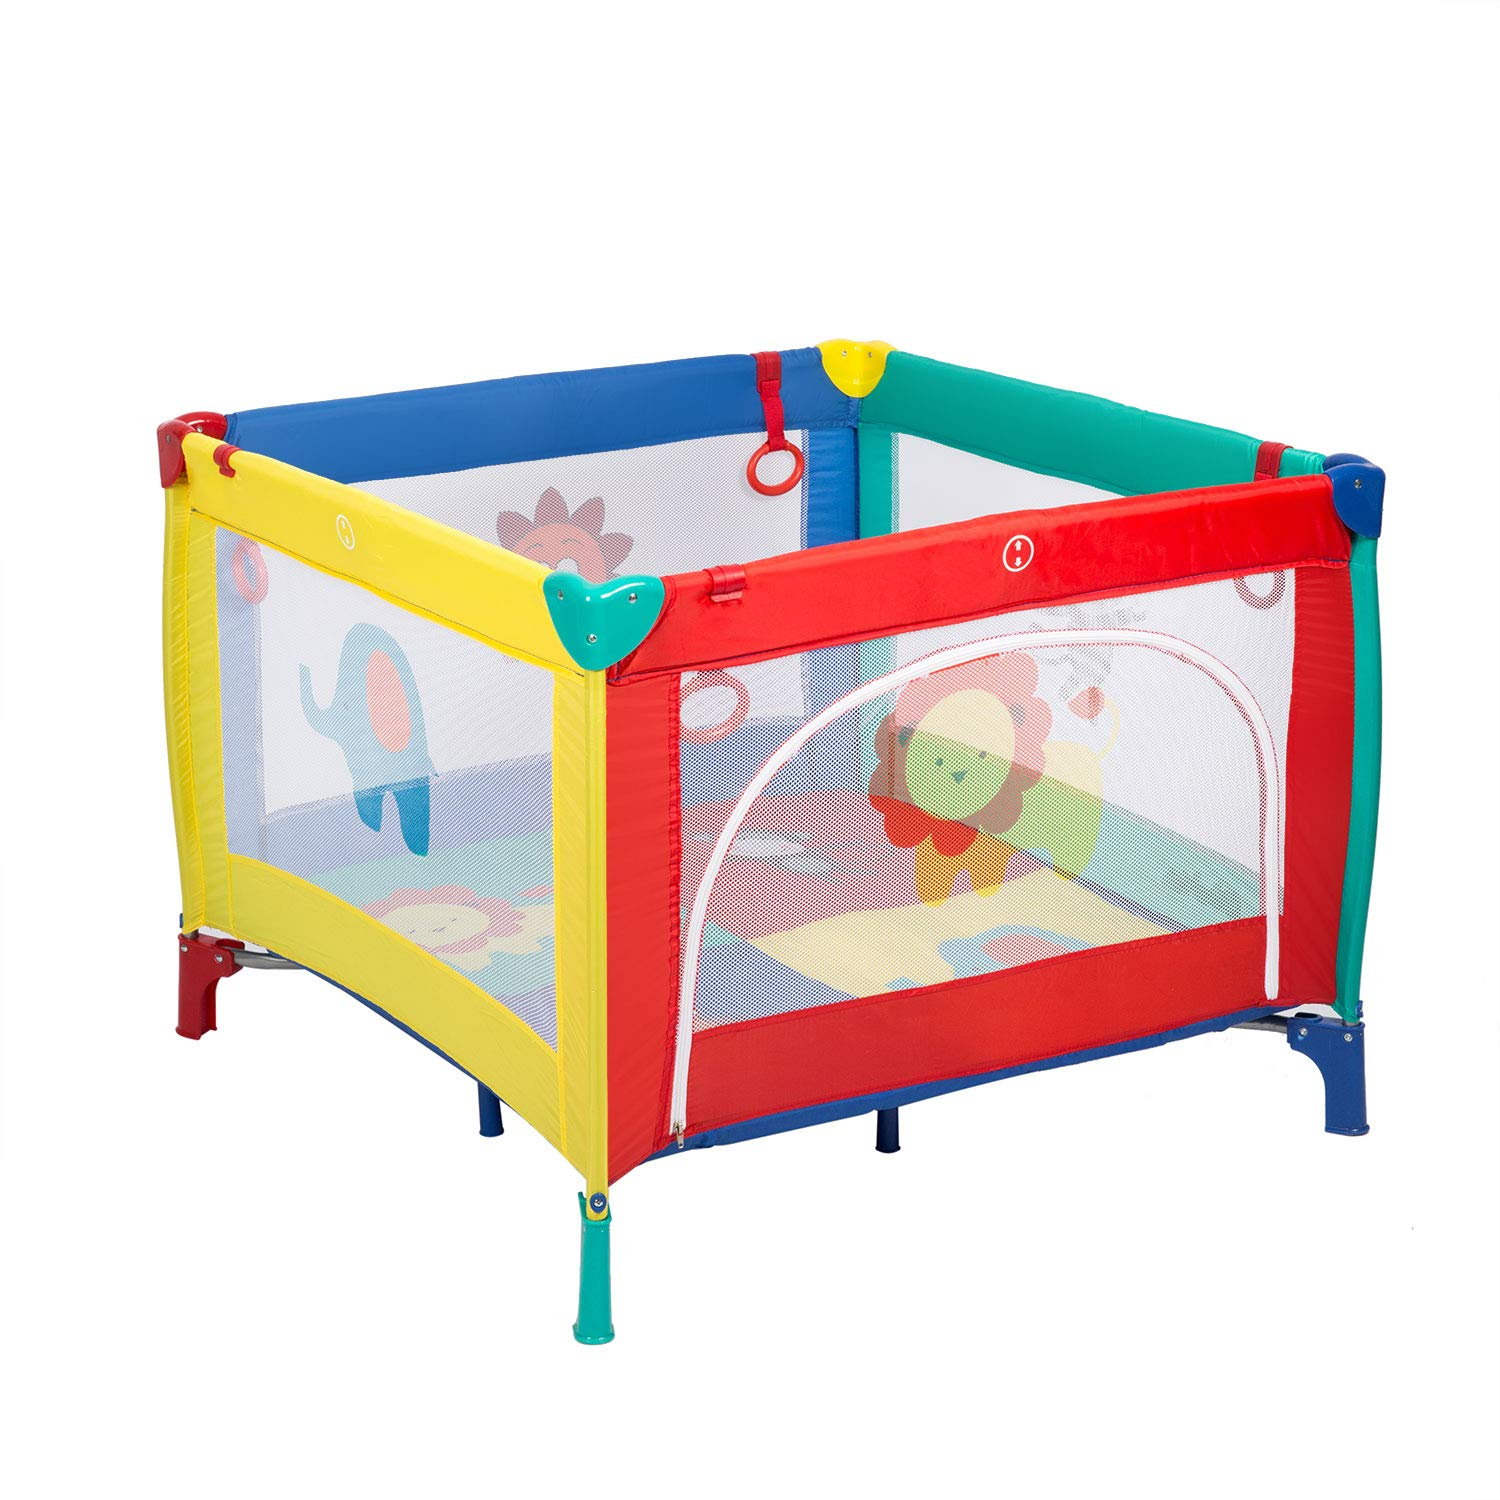 Baby Playpen Foldable Travel Crib Safe Activity Center Playard with Zipper Door for Infants and Toddlers